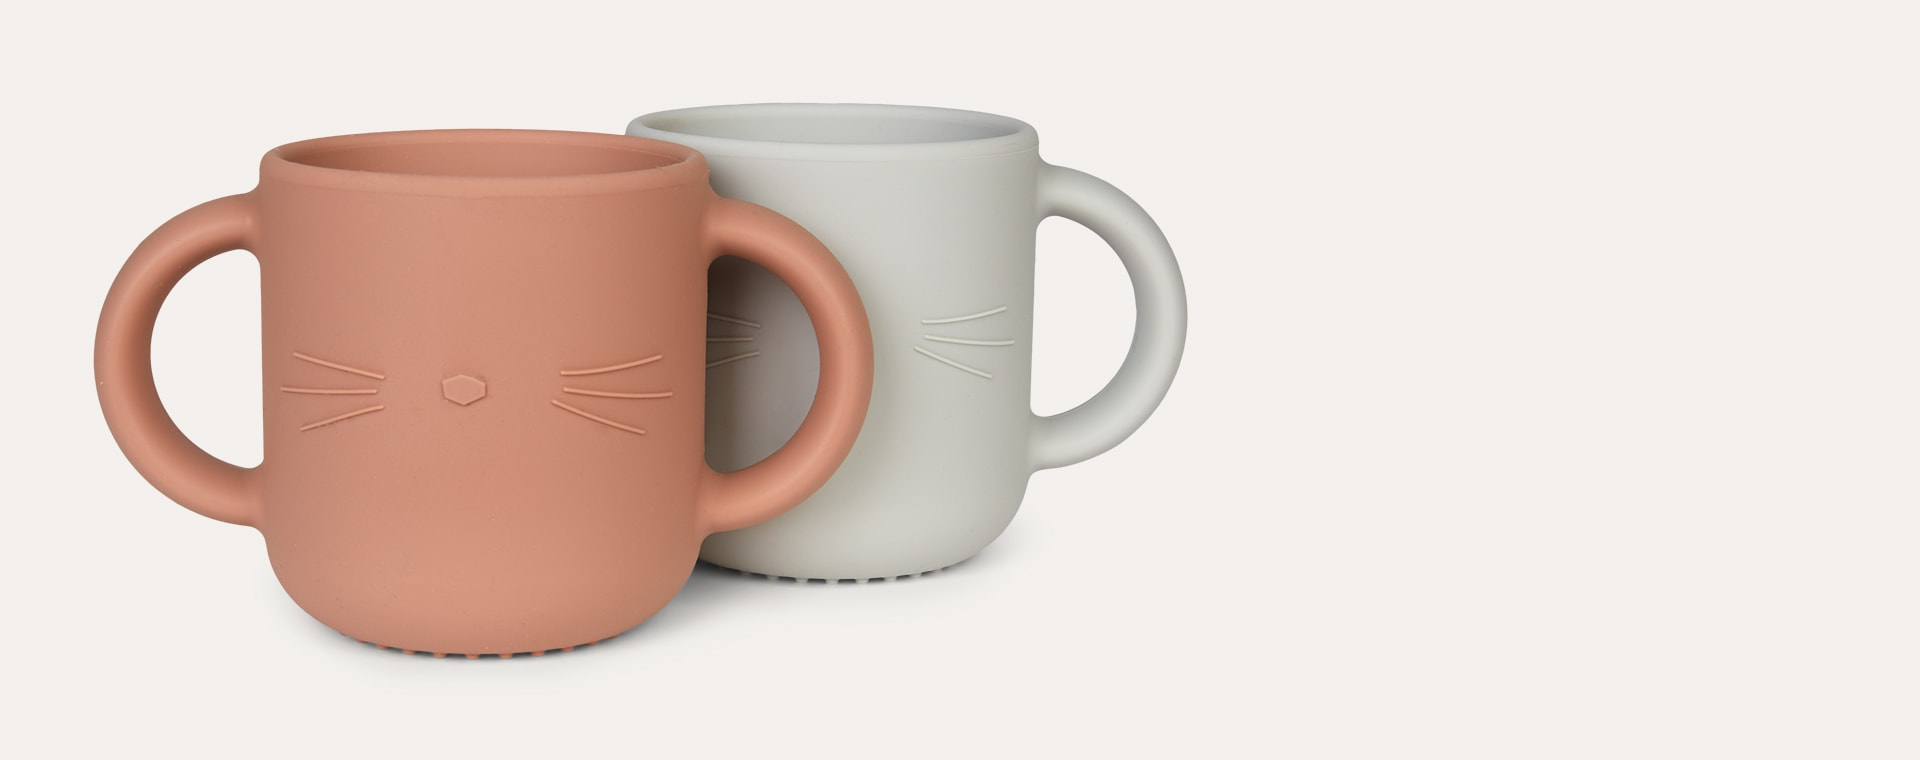 Dumbo Grey Liewood Gene Silicone Cup - 2 Pack